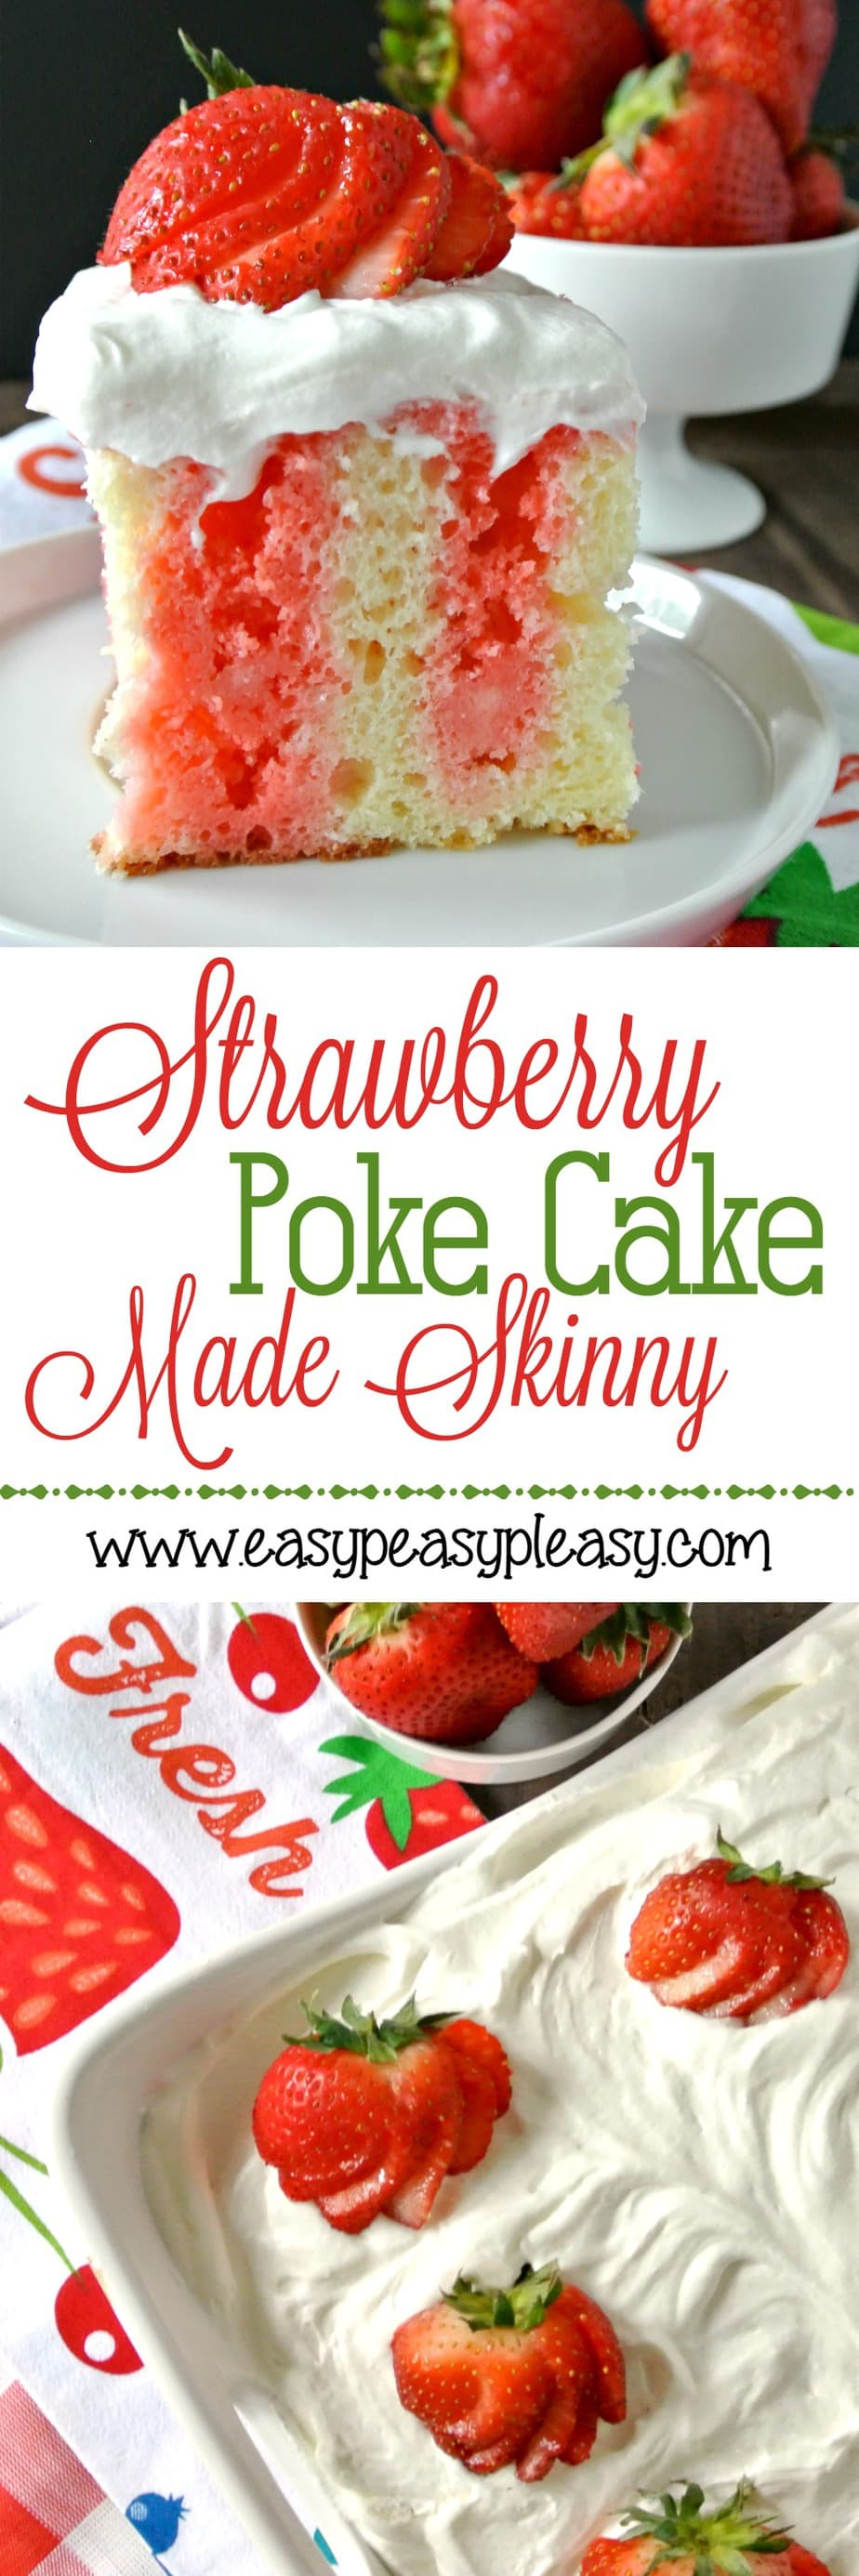 Strawberry Poke Cake Made skinny is the lightened up version of a yummy dessert!